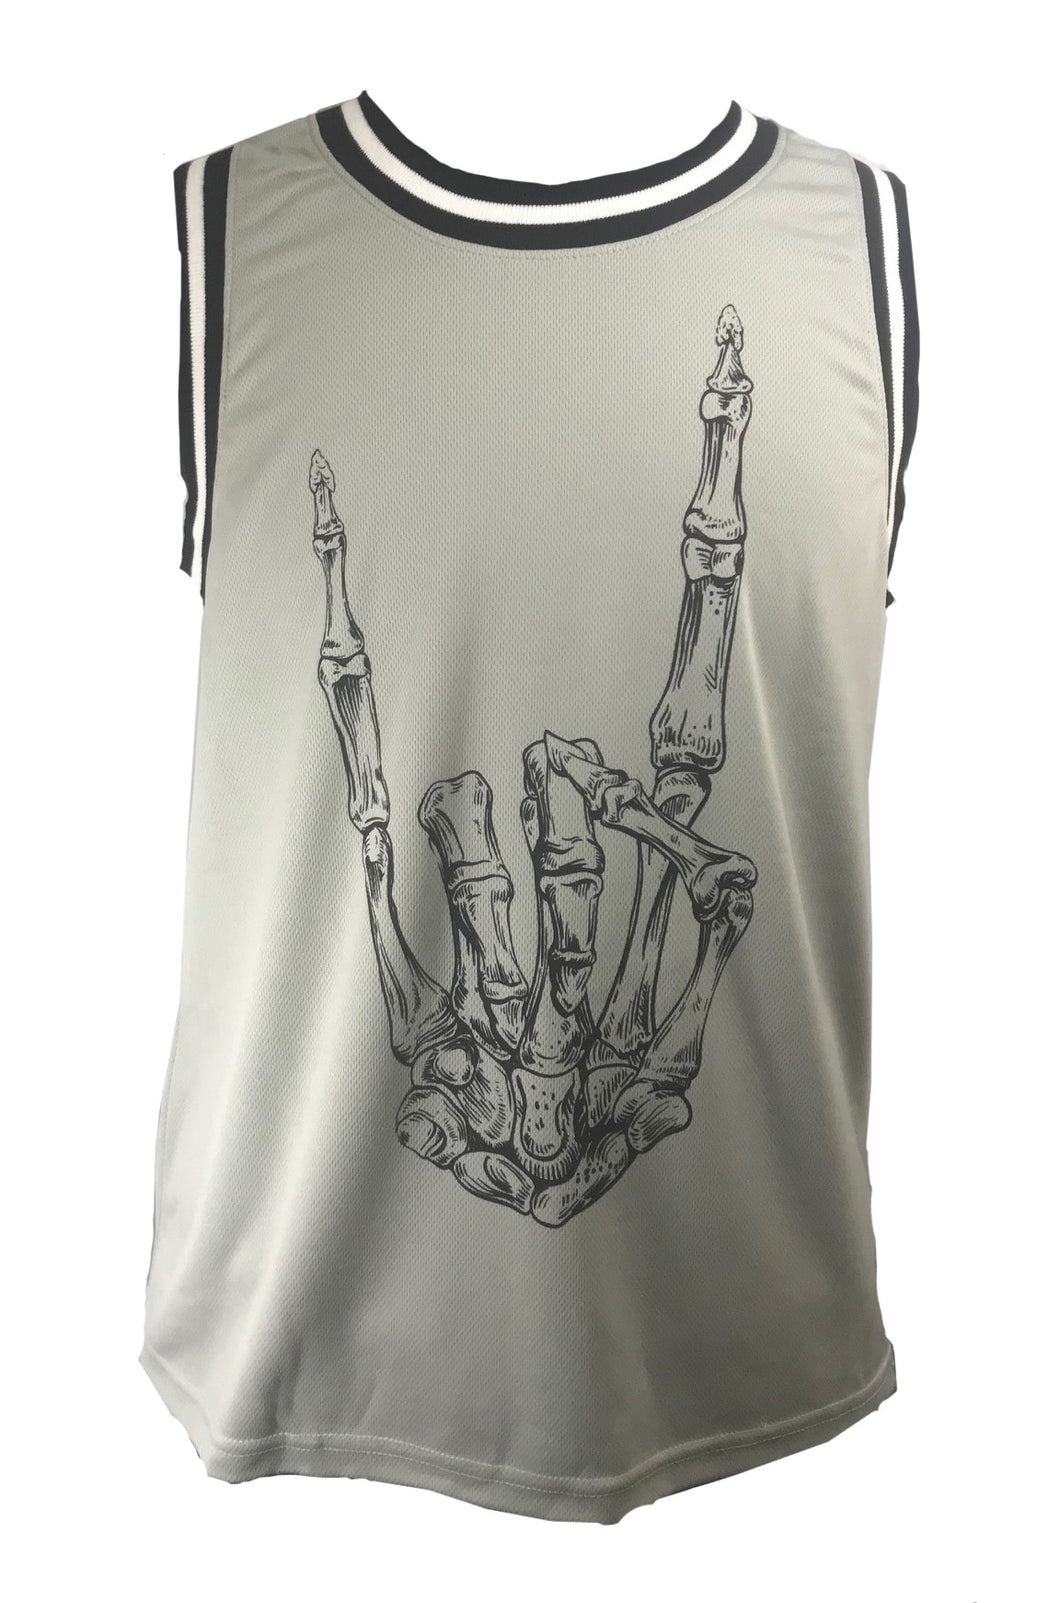 METAL FINGER BASKETBALL JERSEY - Trailsclothing.com